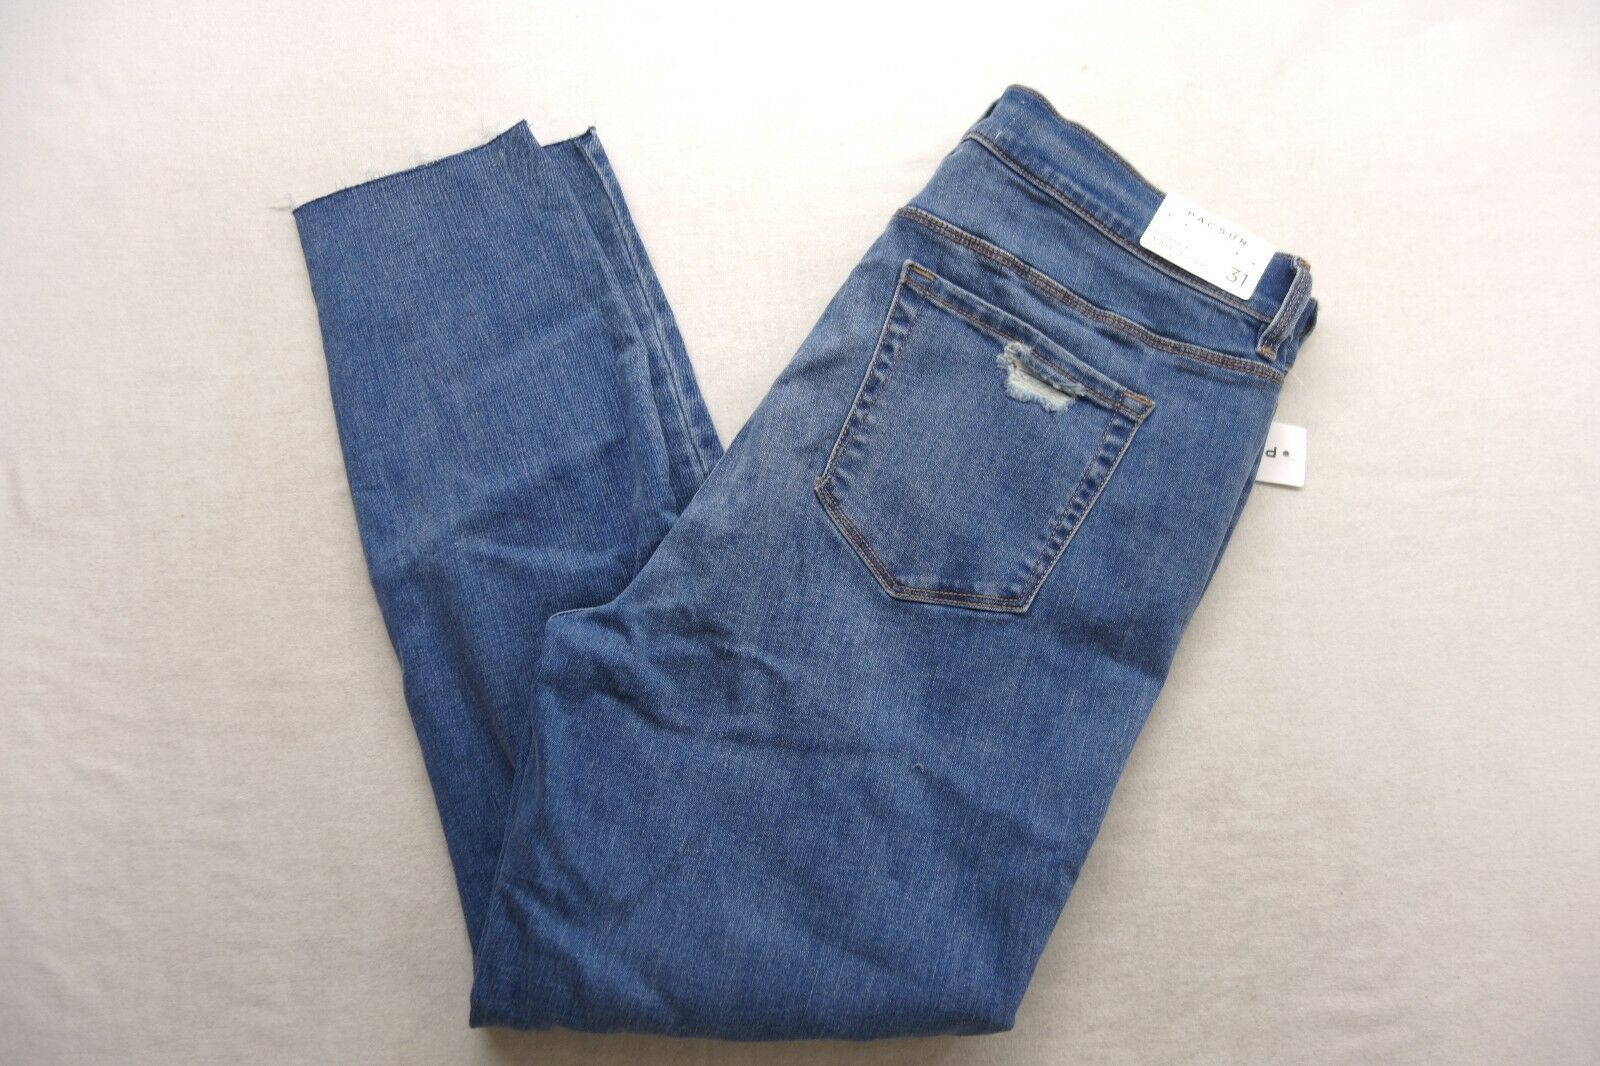 New Womens Pacsun High Rise Ankle Jegging Stretch Distressed Denim Jeans 31 x 26